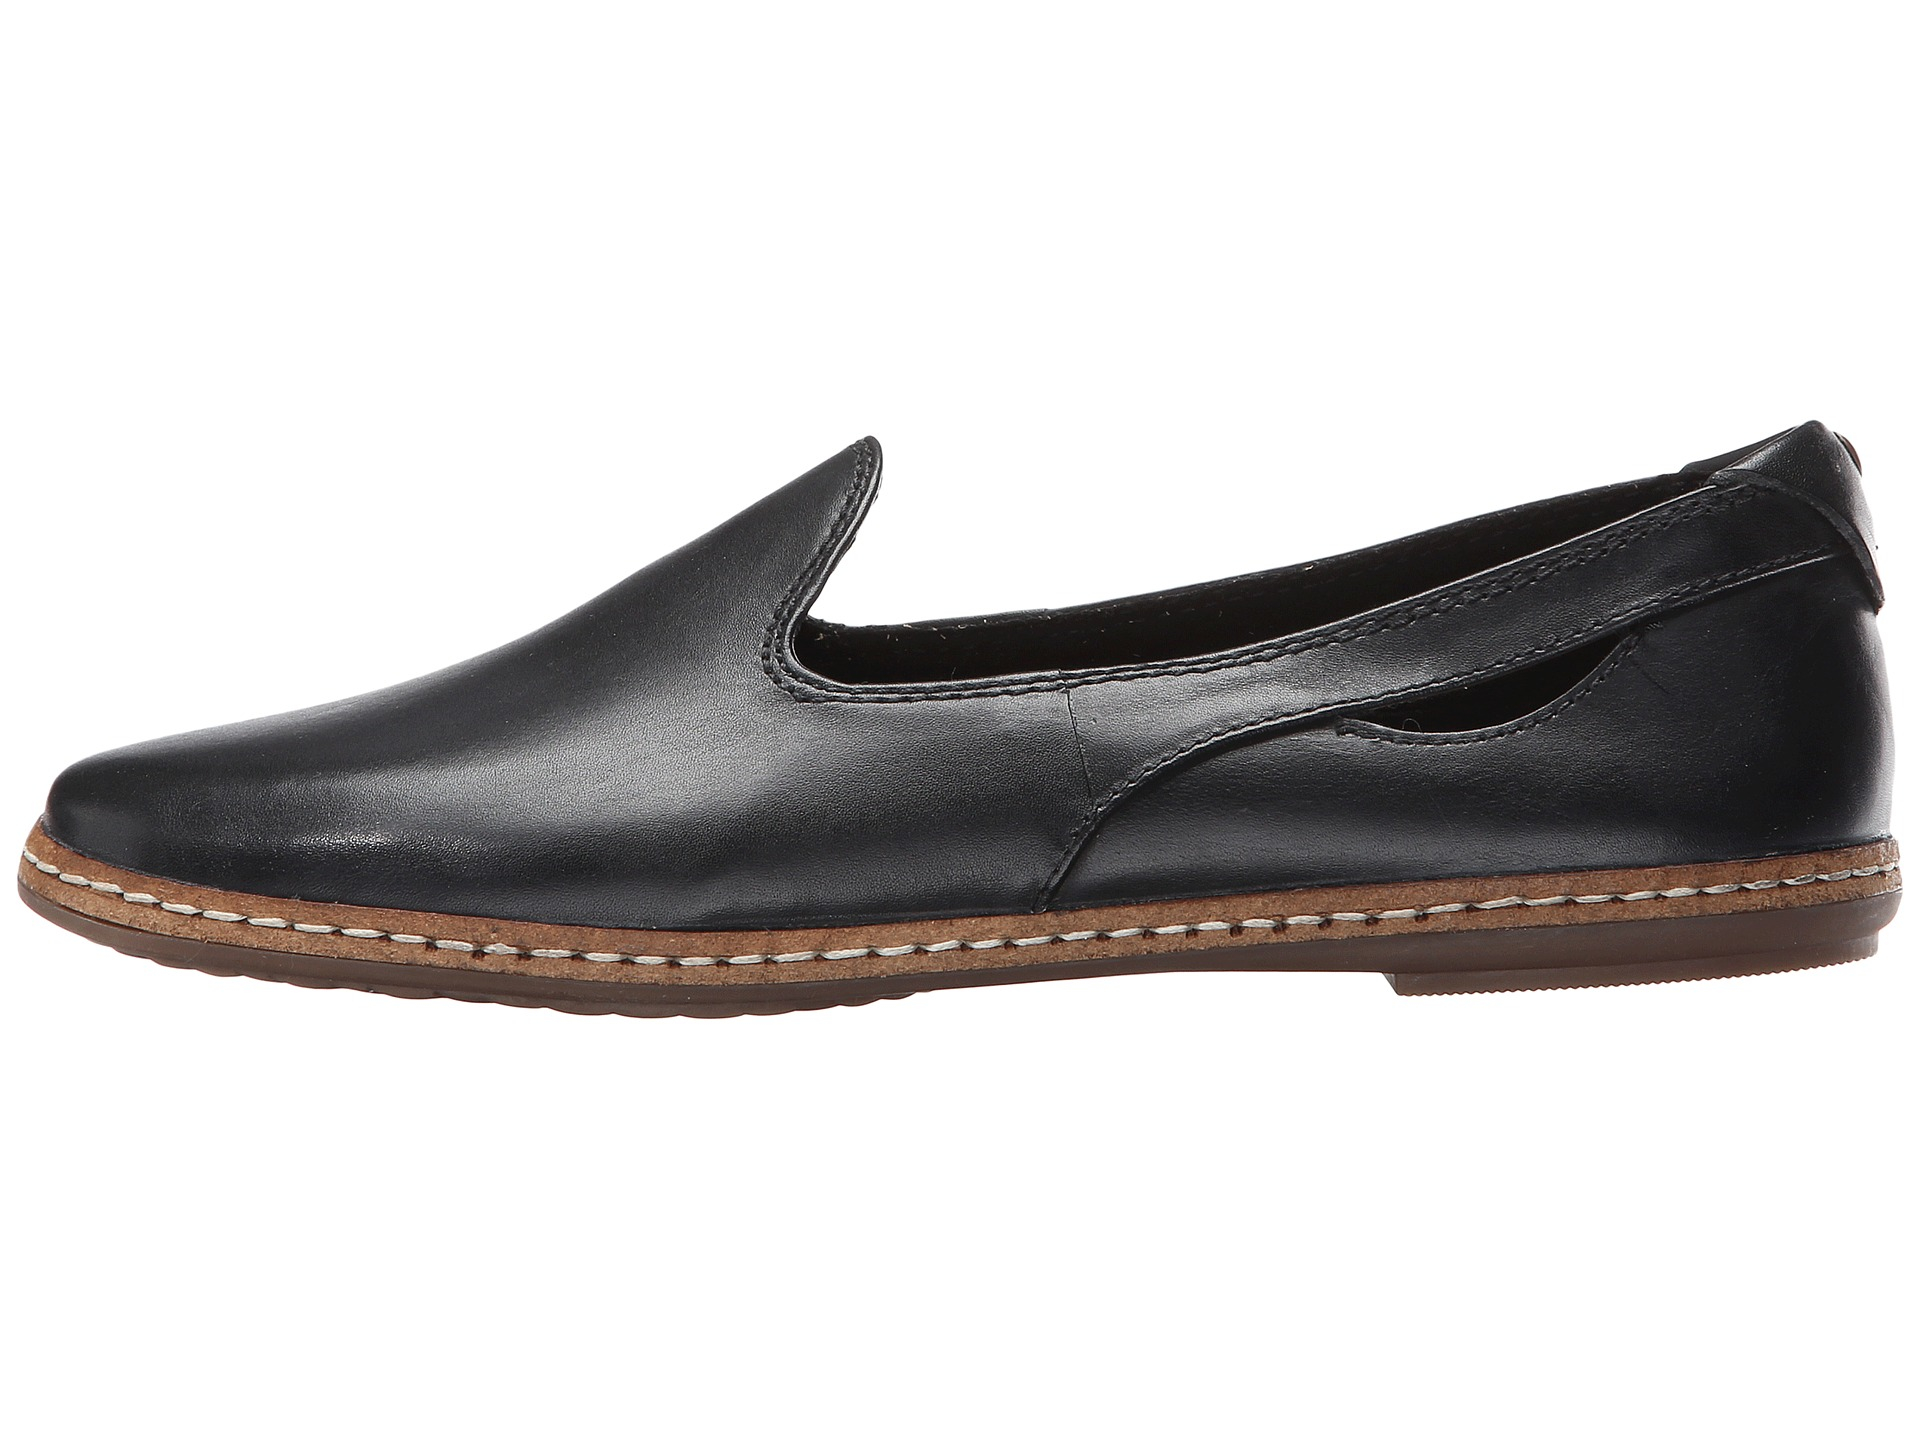 sebeka women Buy hush puppies women's sebeka piper flat and other loafers & slip-ons at  amazoncom our wide selection is eligible for free shipping and free returns.